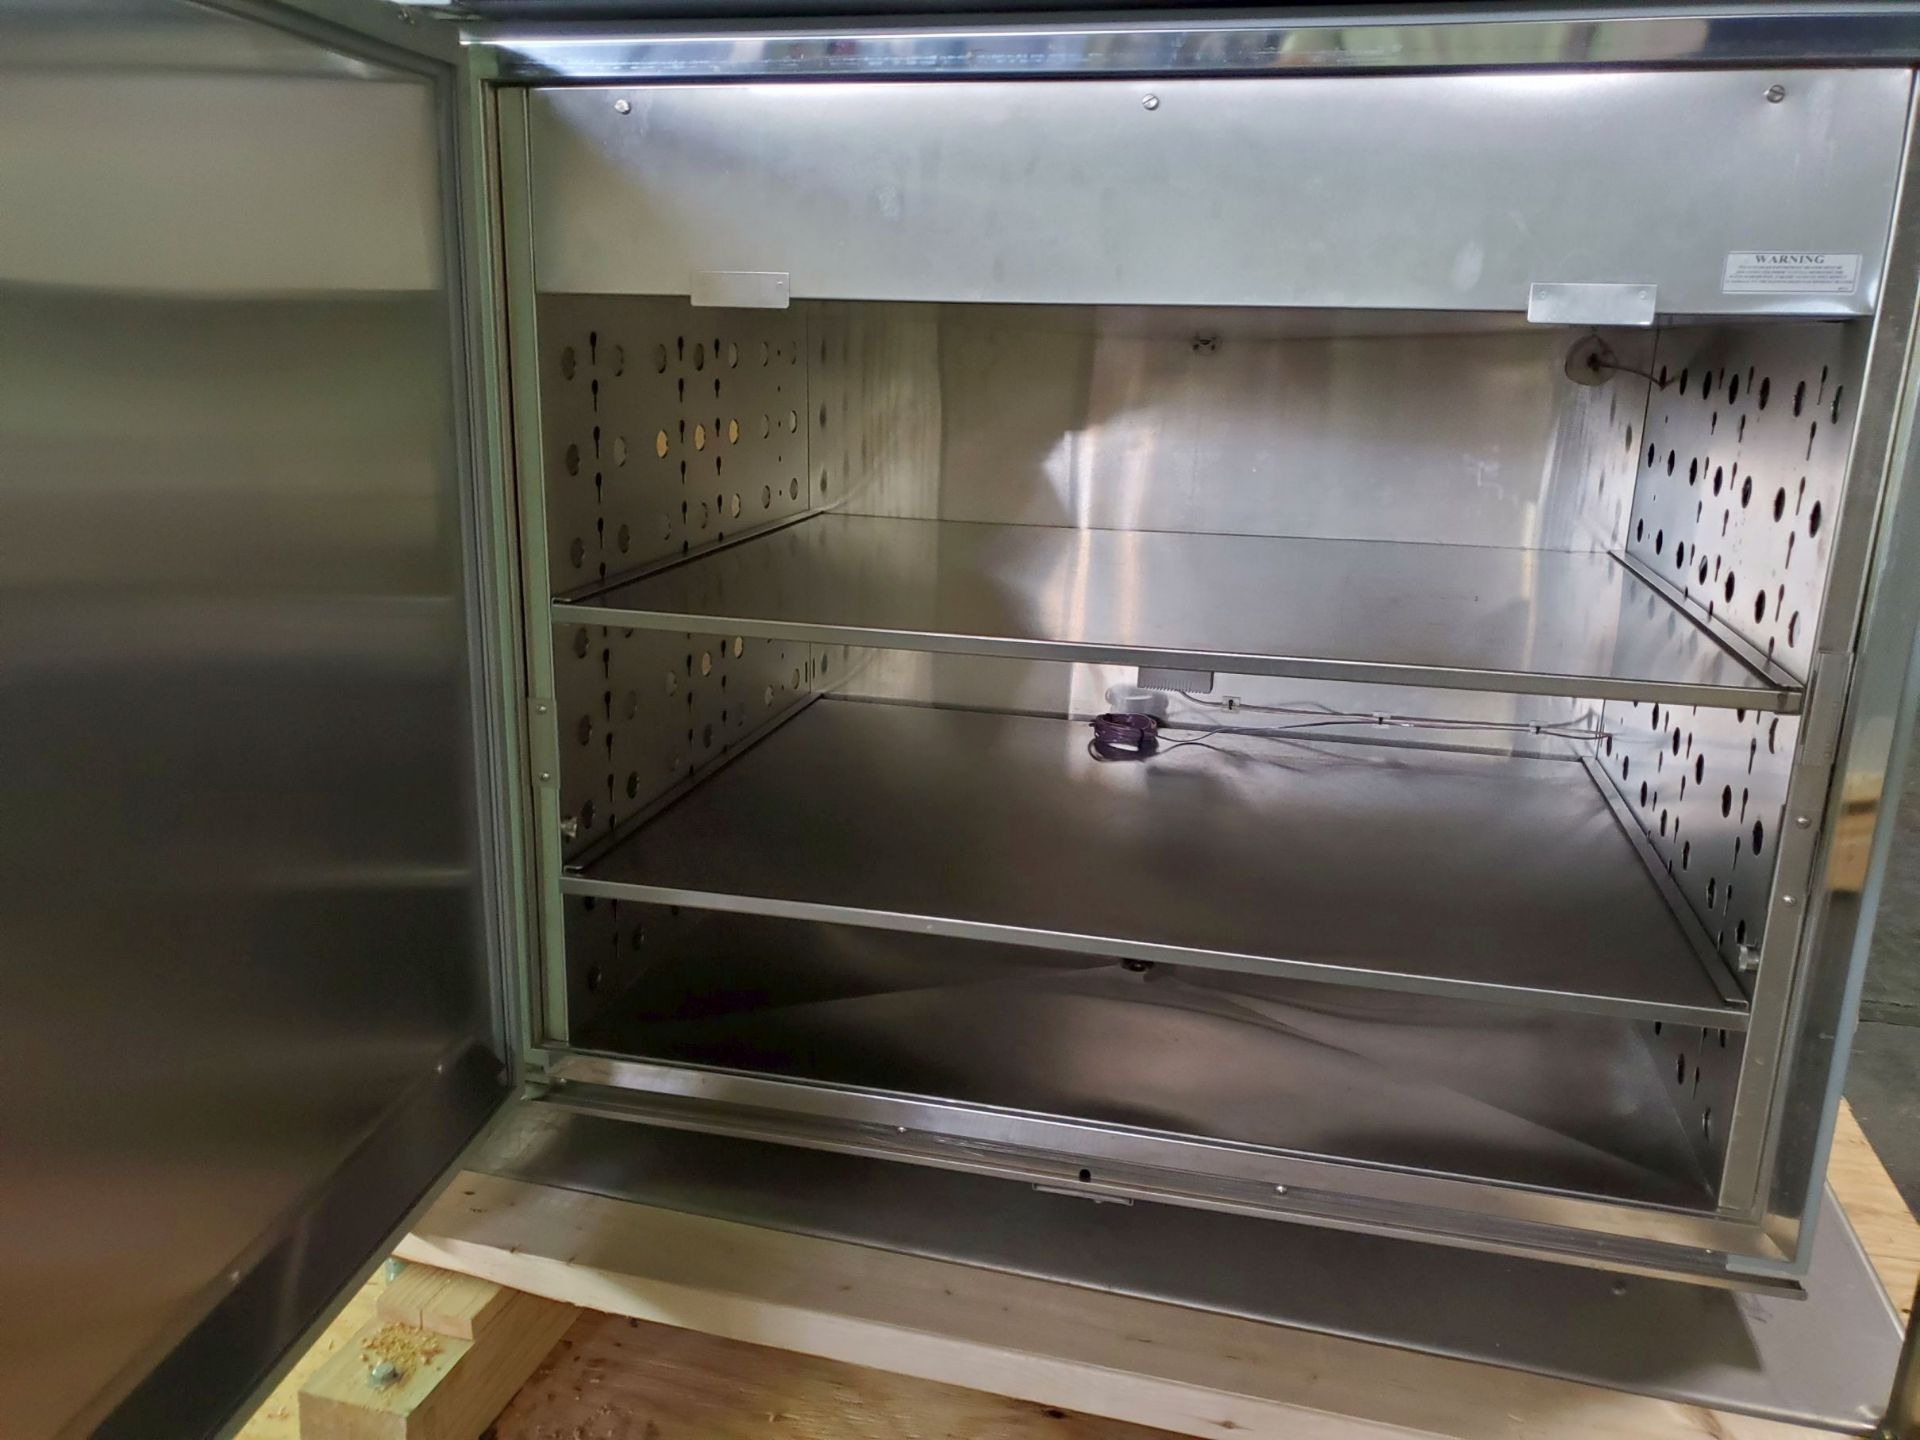 Environmental Specialties Stability Chamber, model ES2000 CDM/BT, 0-70 C and 10-96% humidty range, - Image 2 of 9